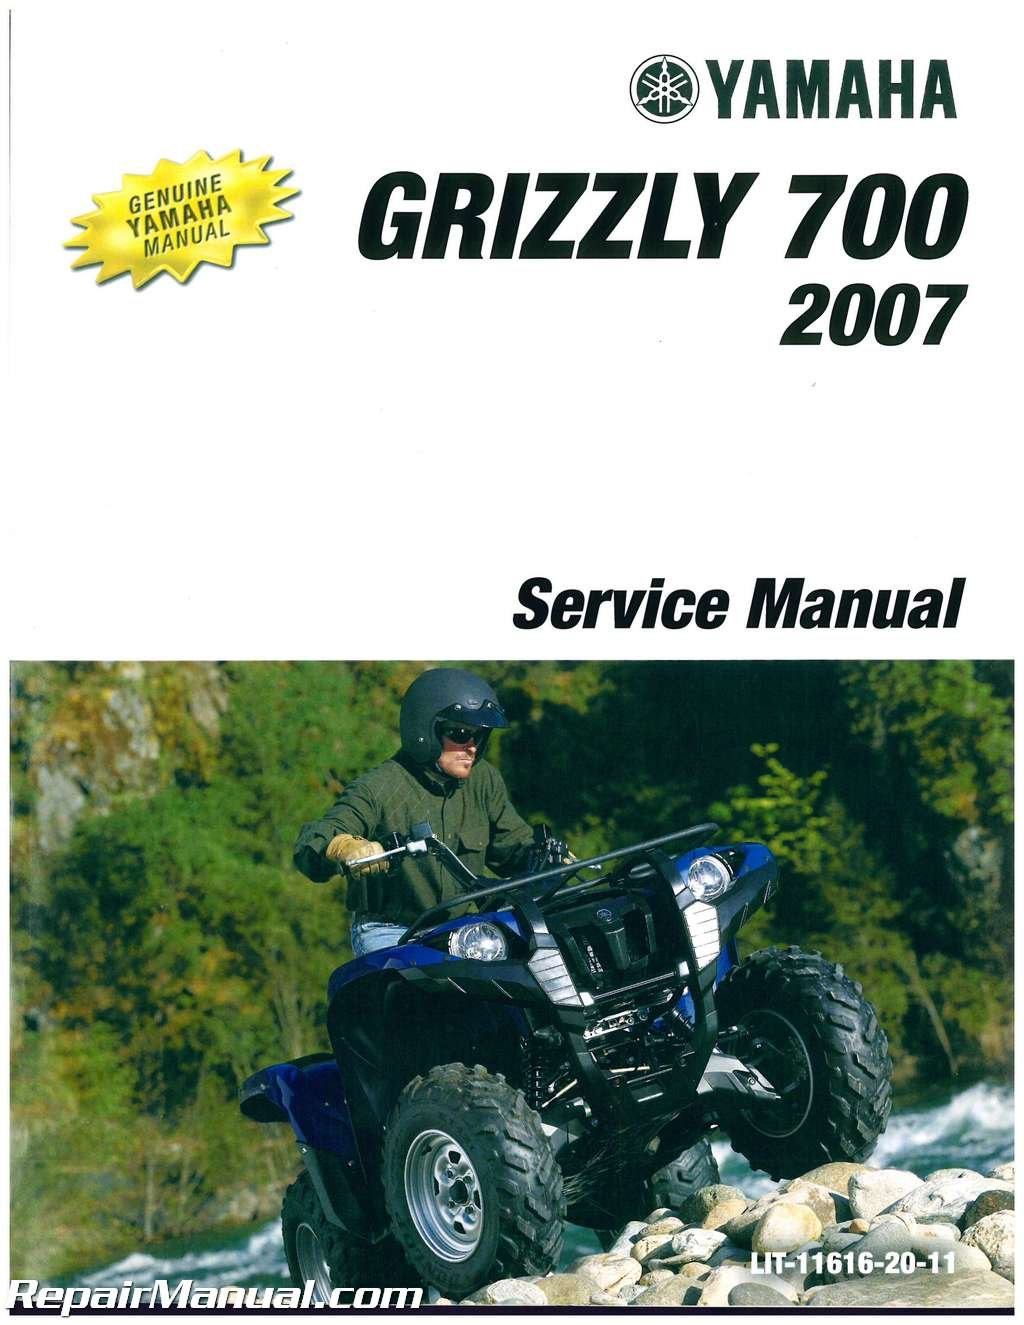 lit 11616 20 11 2007 yamaha yfm 700 grizzly service manual rh amazon com 2007 yamaha grizzly 700 owners manual pdf free 2007 yamaha grizzly 700 service manual